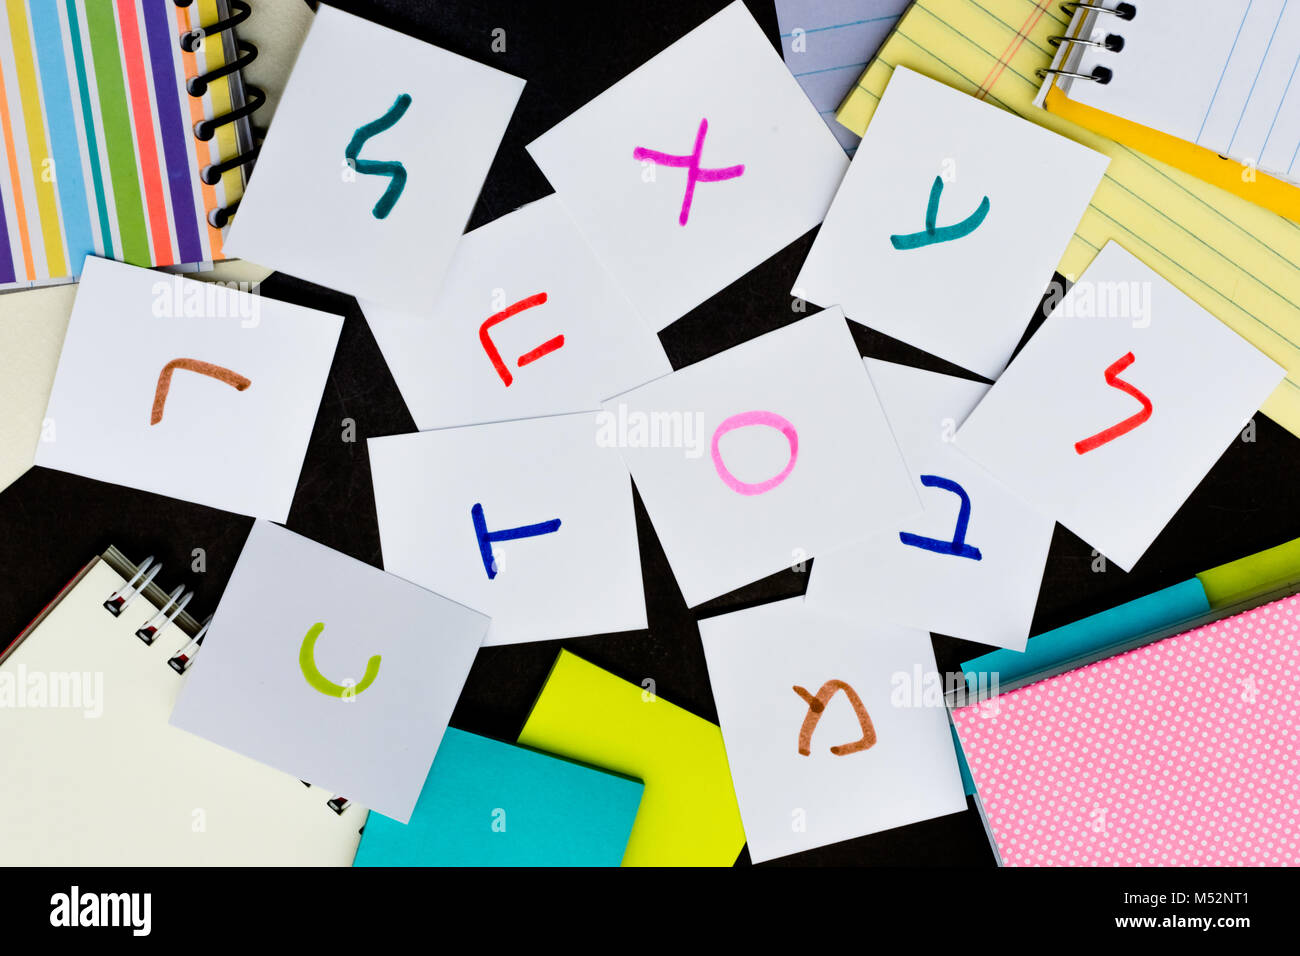 Hebrew; Learning Language with Handwritten Alphabet Character Cards - Stock Image